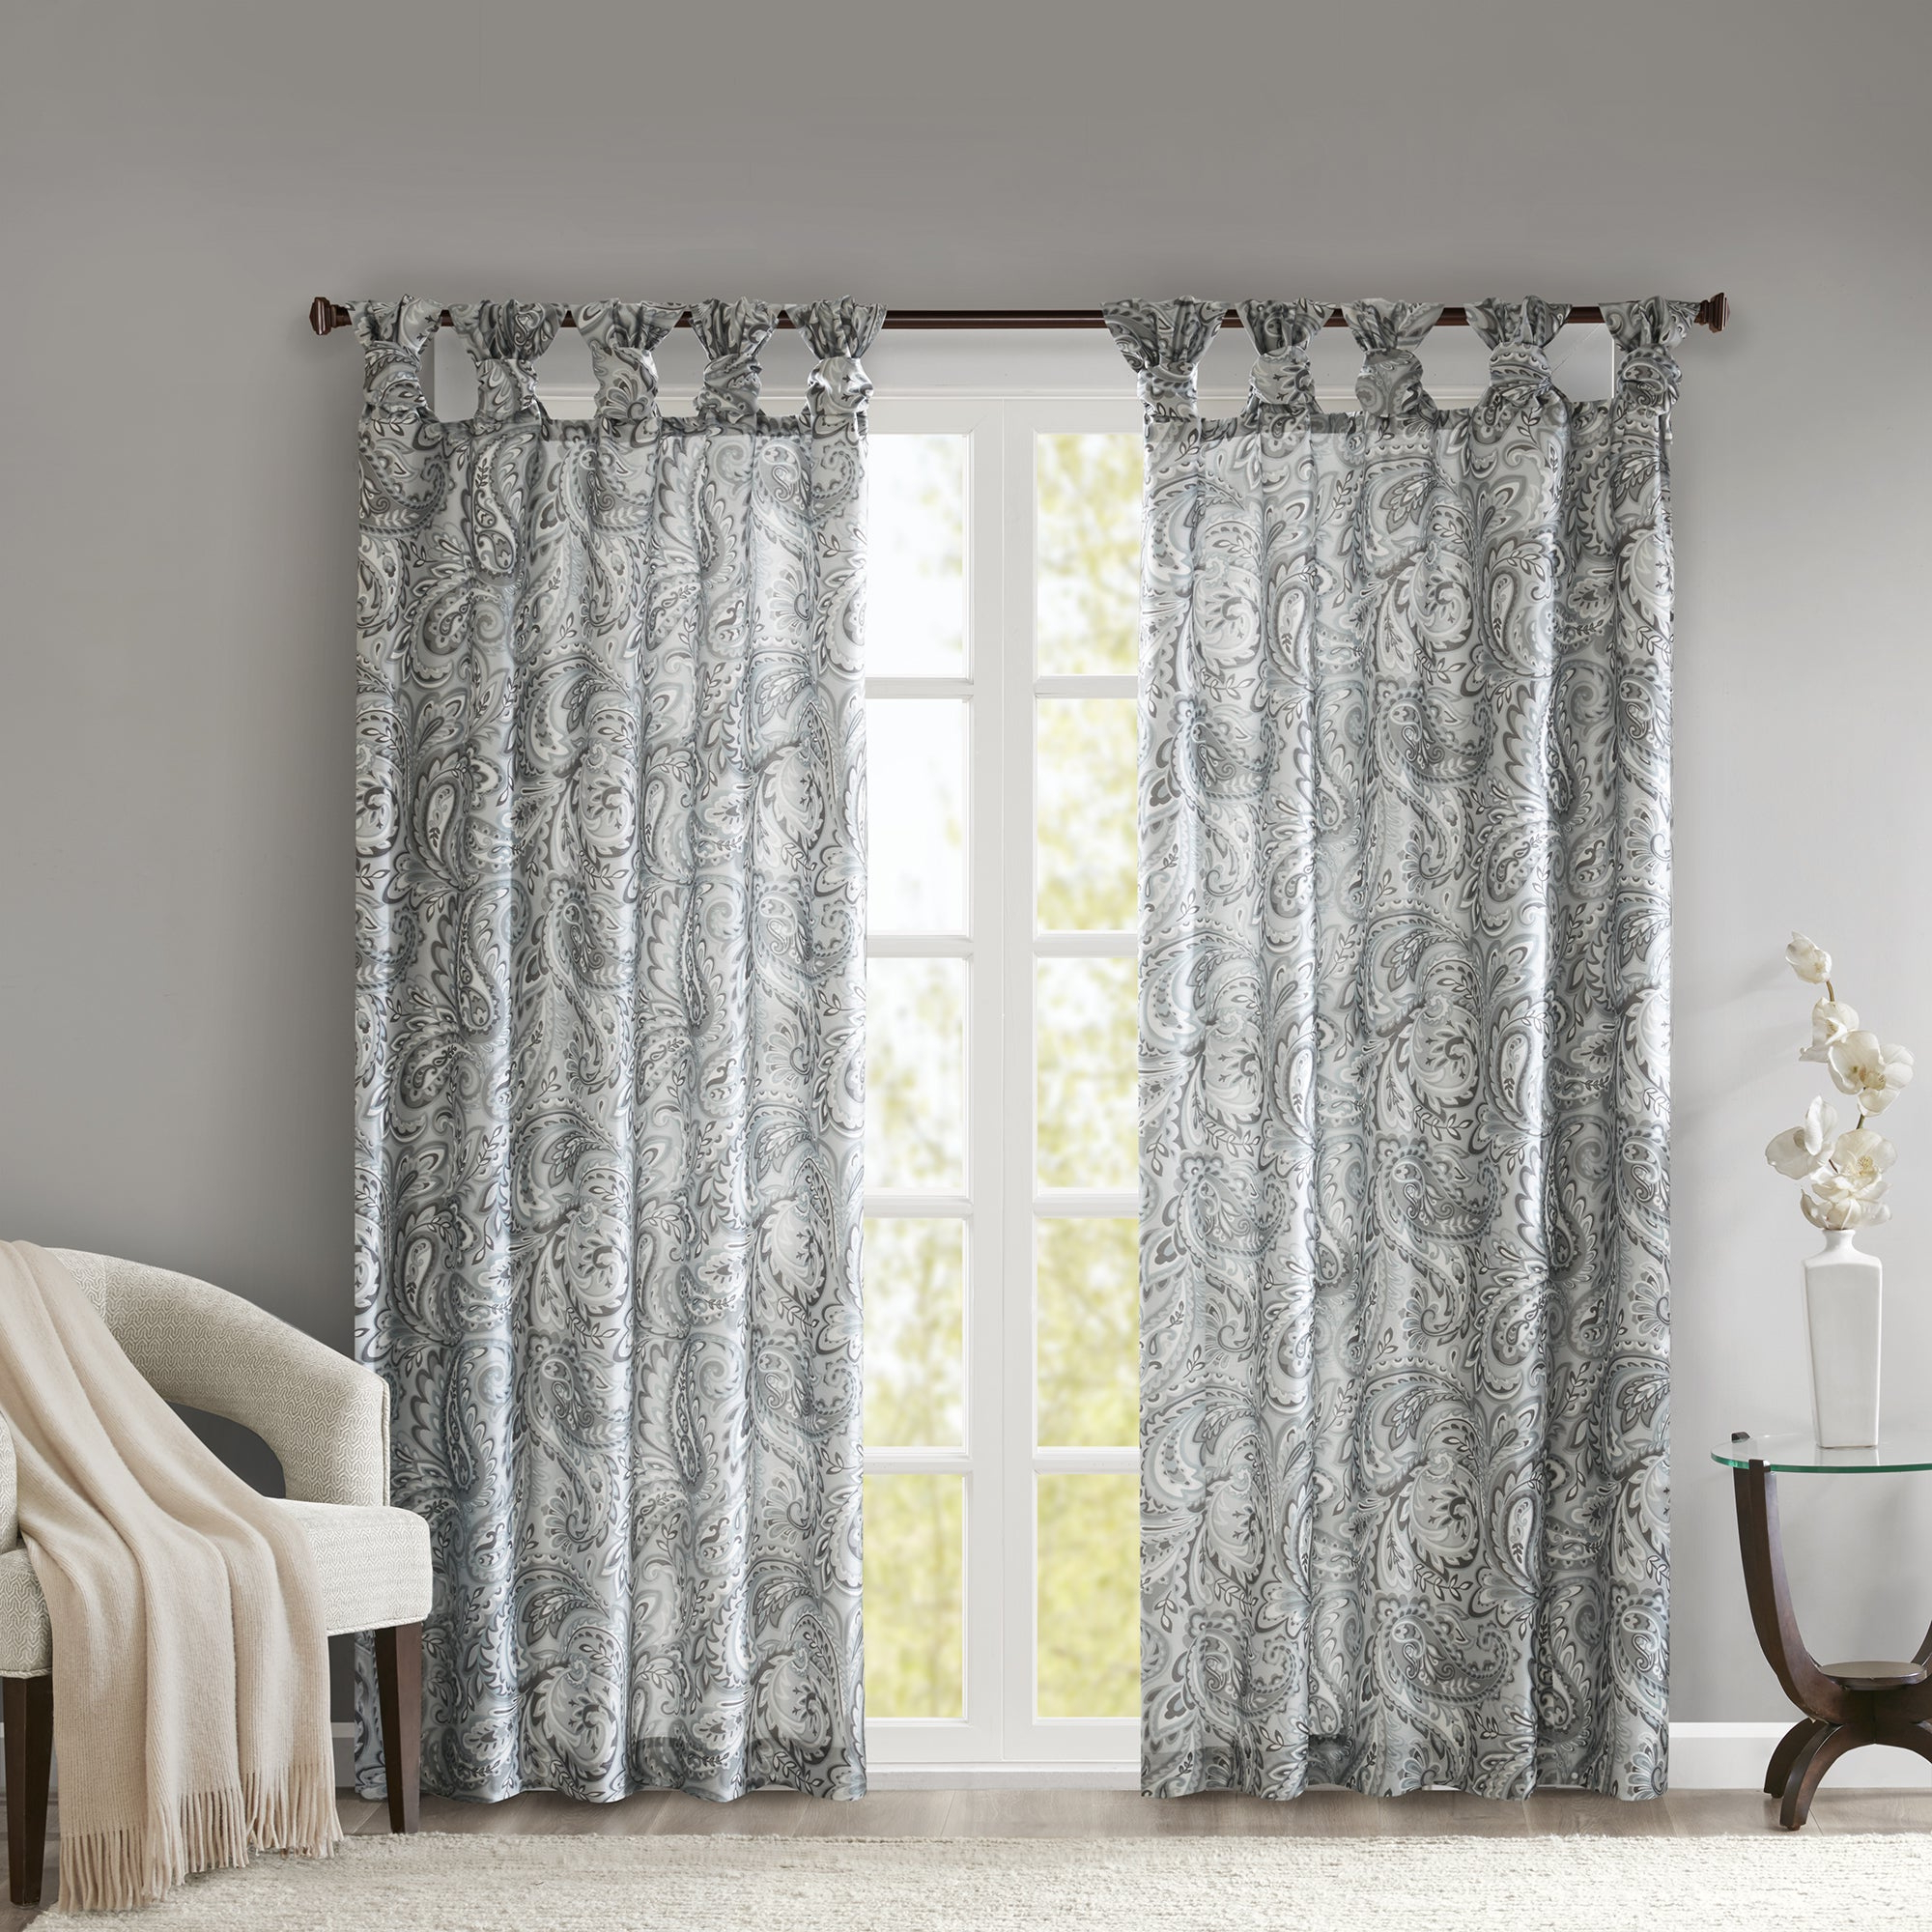 Most Popular Madison Park Rosalie Twist Tab Paisley Printed Single Window Curtain Panel Throughout Sunsmart Dahlia Paisley Printed Total Blackout Single Window Curtain Panels (View 7 of 20)